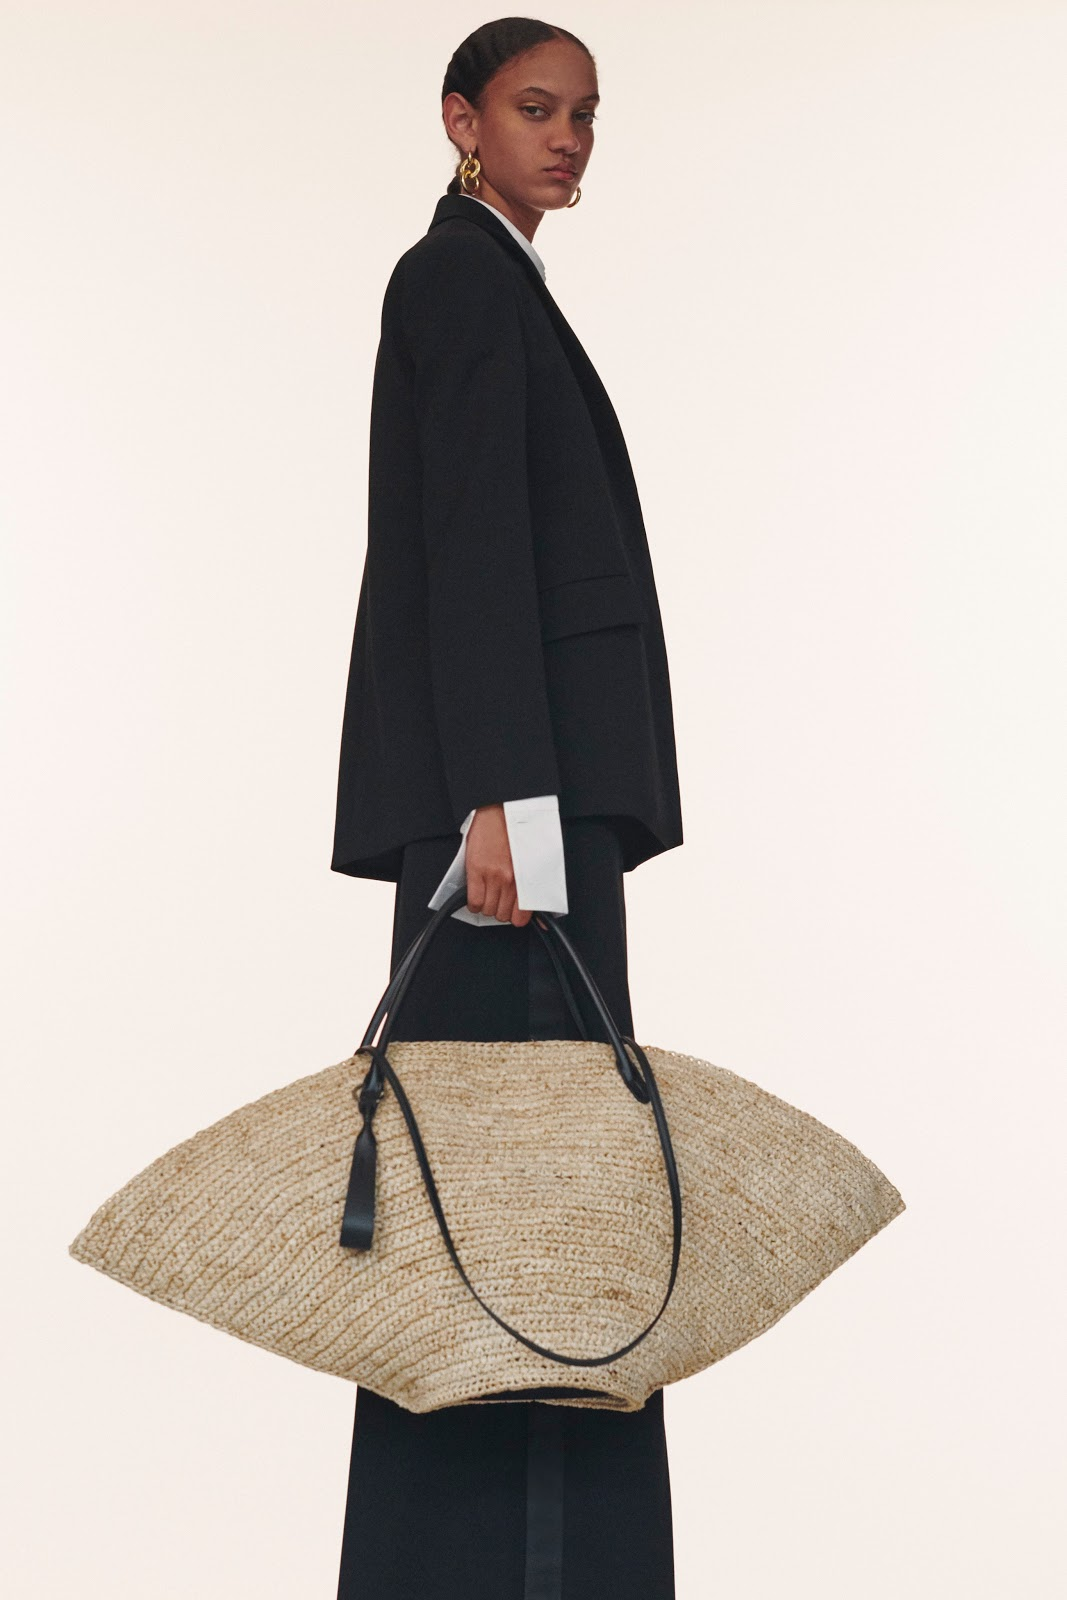 Jil Sander Resort 2020 Collection | Cool Chic Style Fashion